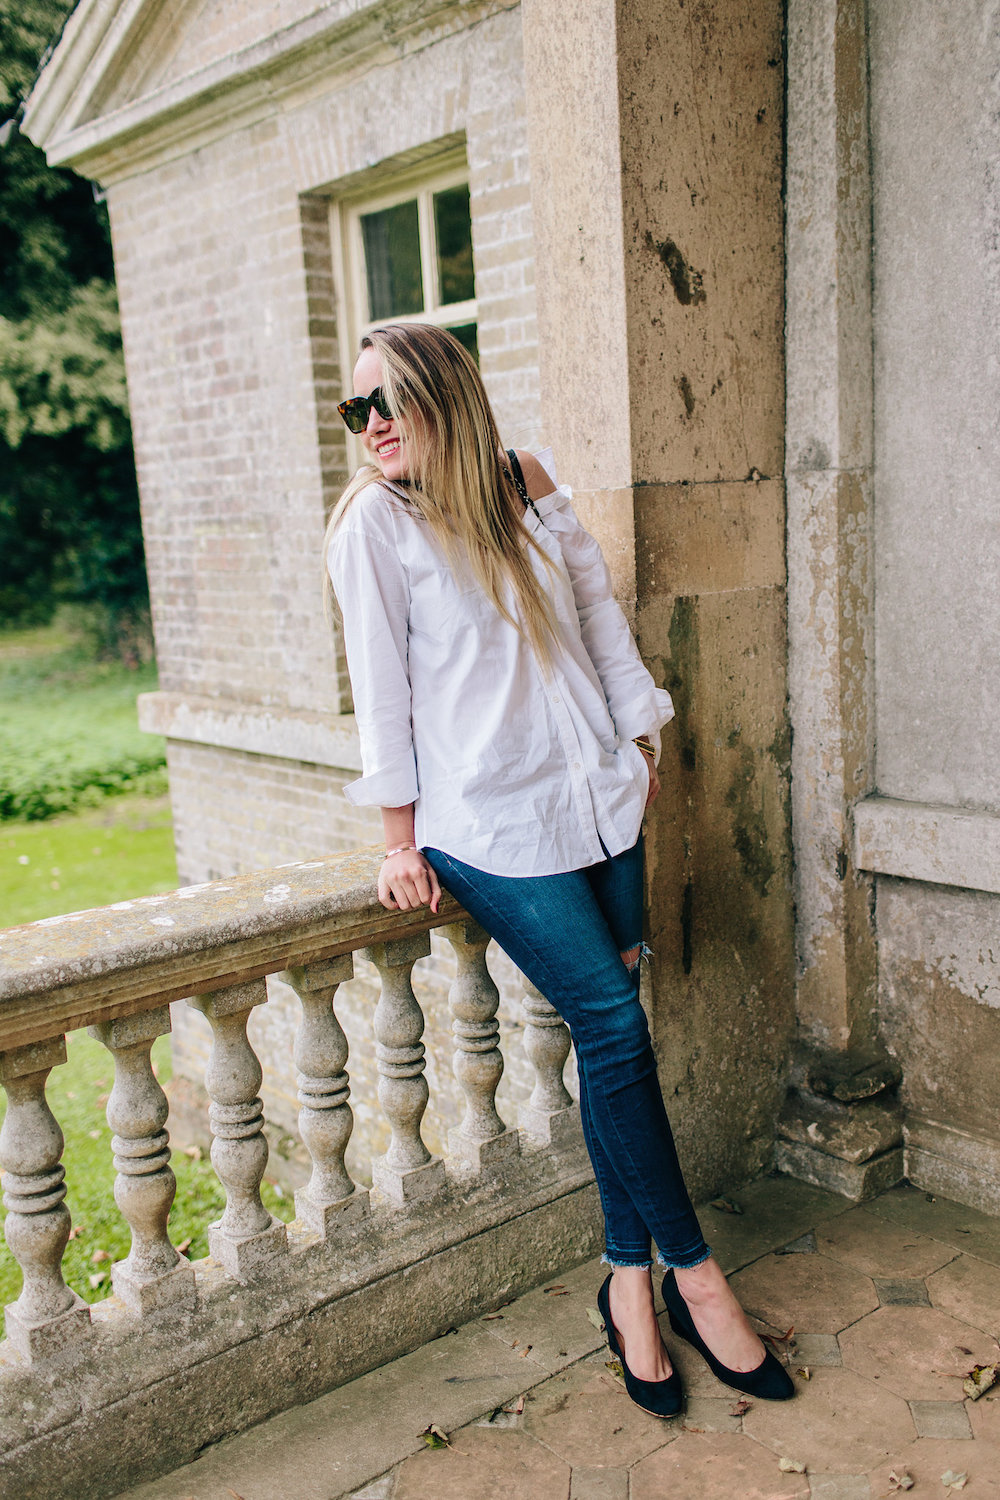 norfolk travel diary | the stripe | a visit to monica vinader's showroom and a private tour and dinner at holkham hall!